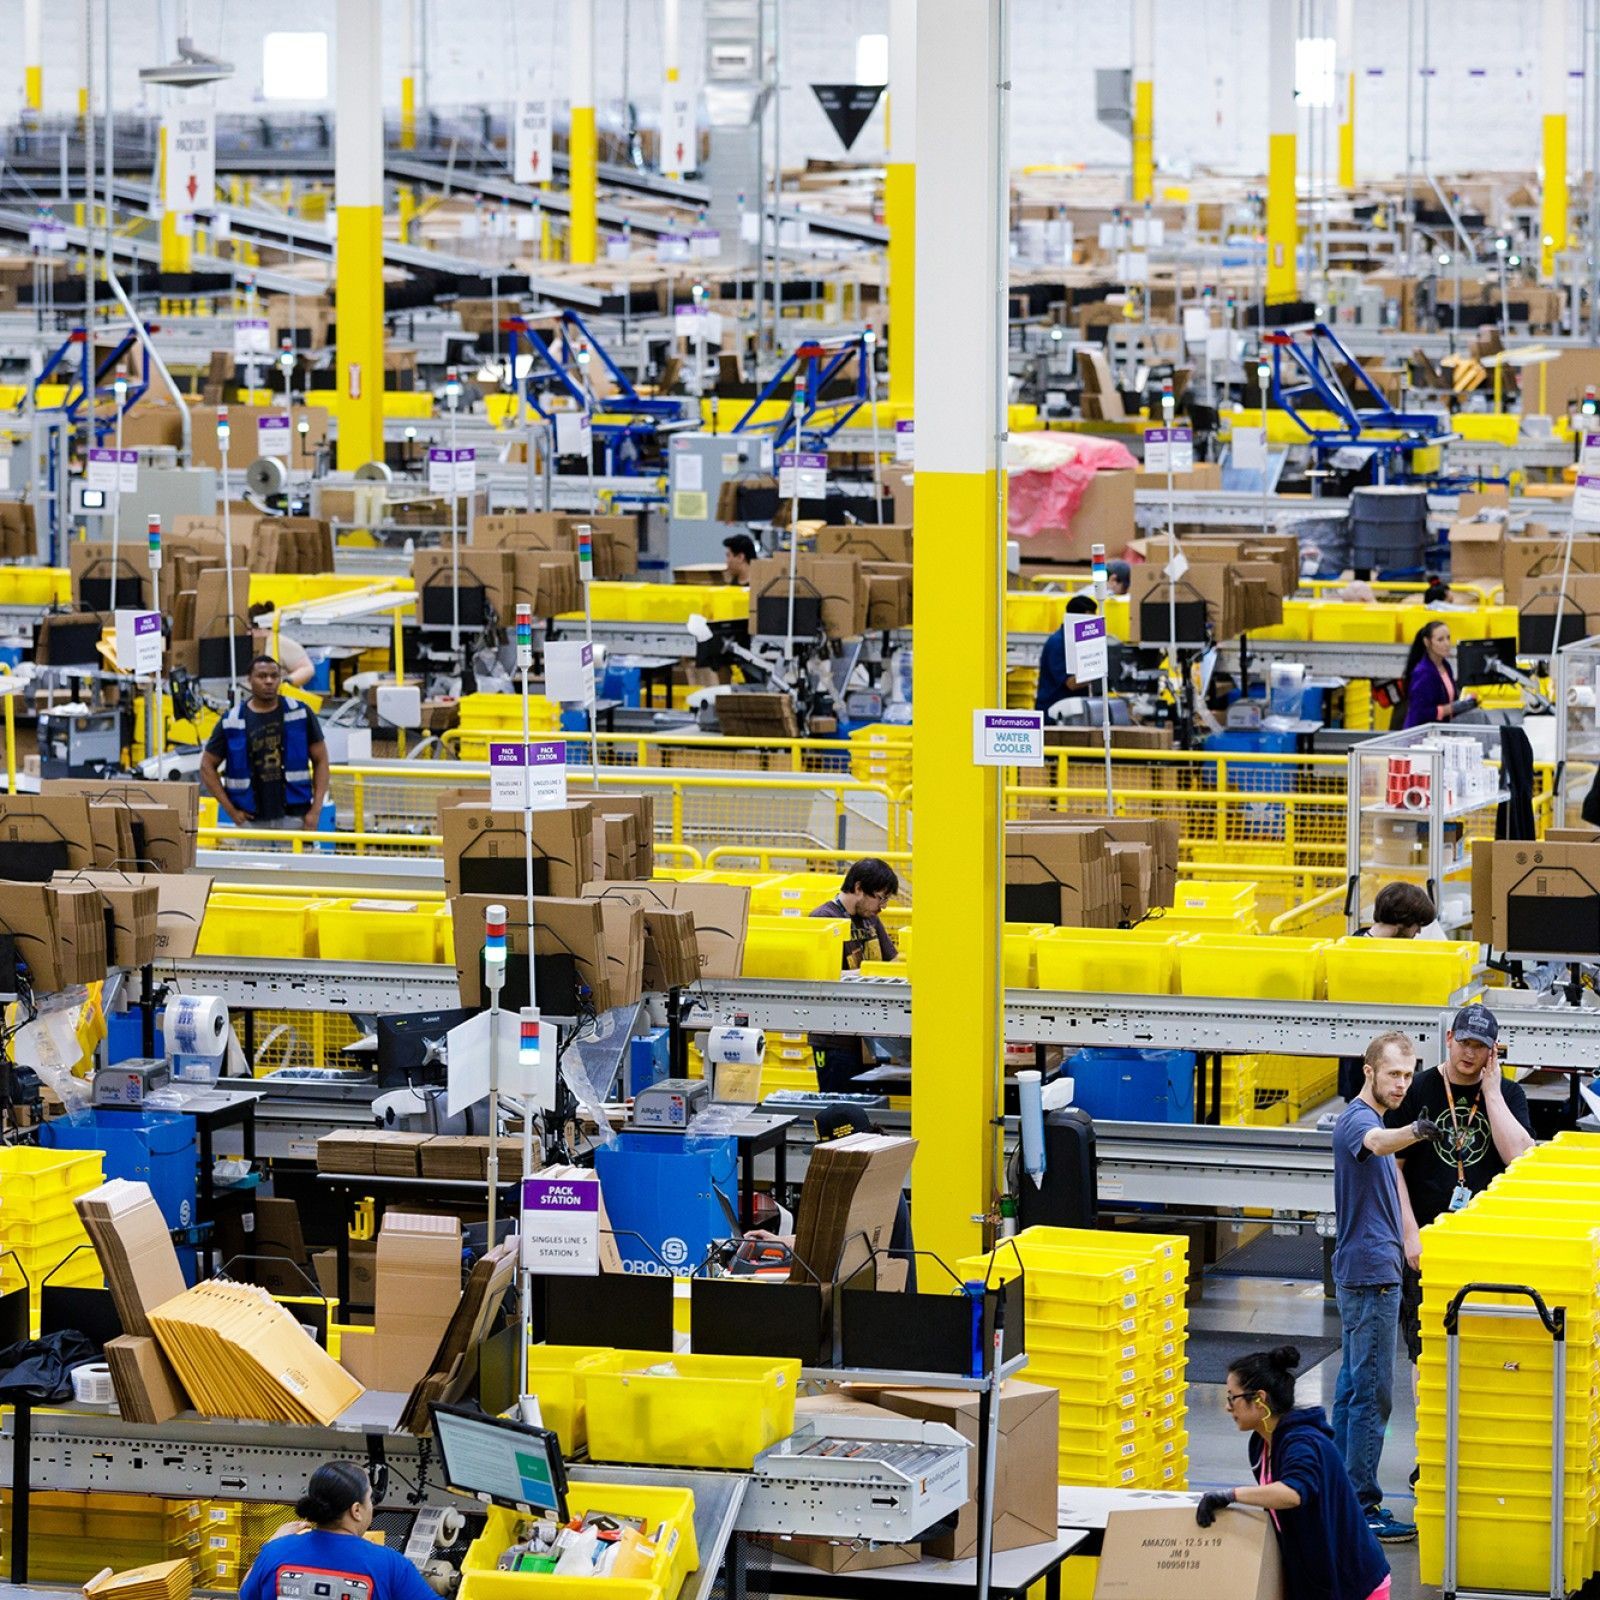 Inside Amazon S Fulfillment Centers What You Can Expect To See On A Warehouse Tour Come Witness The Magi Amazon Fulfillment Center Amazon Jobs Warehouse Jobs